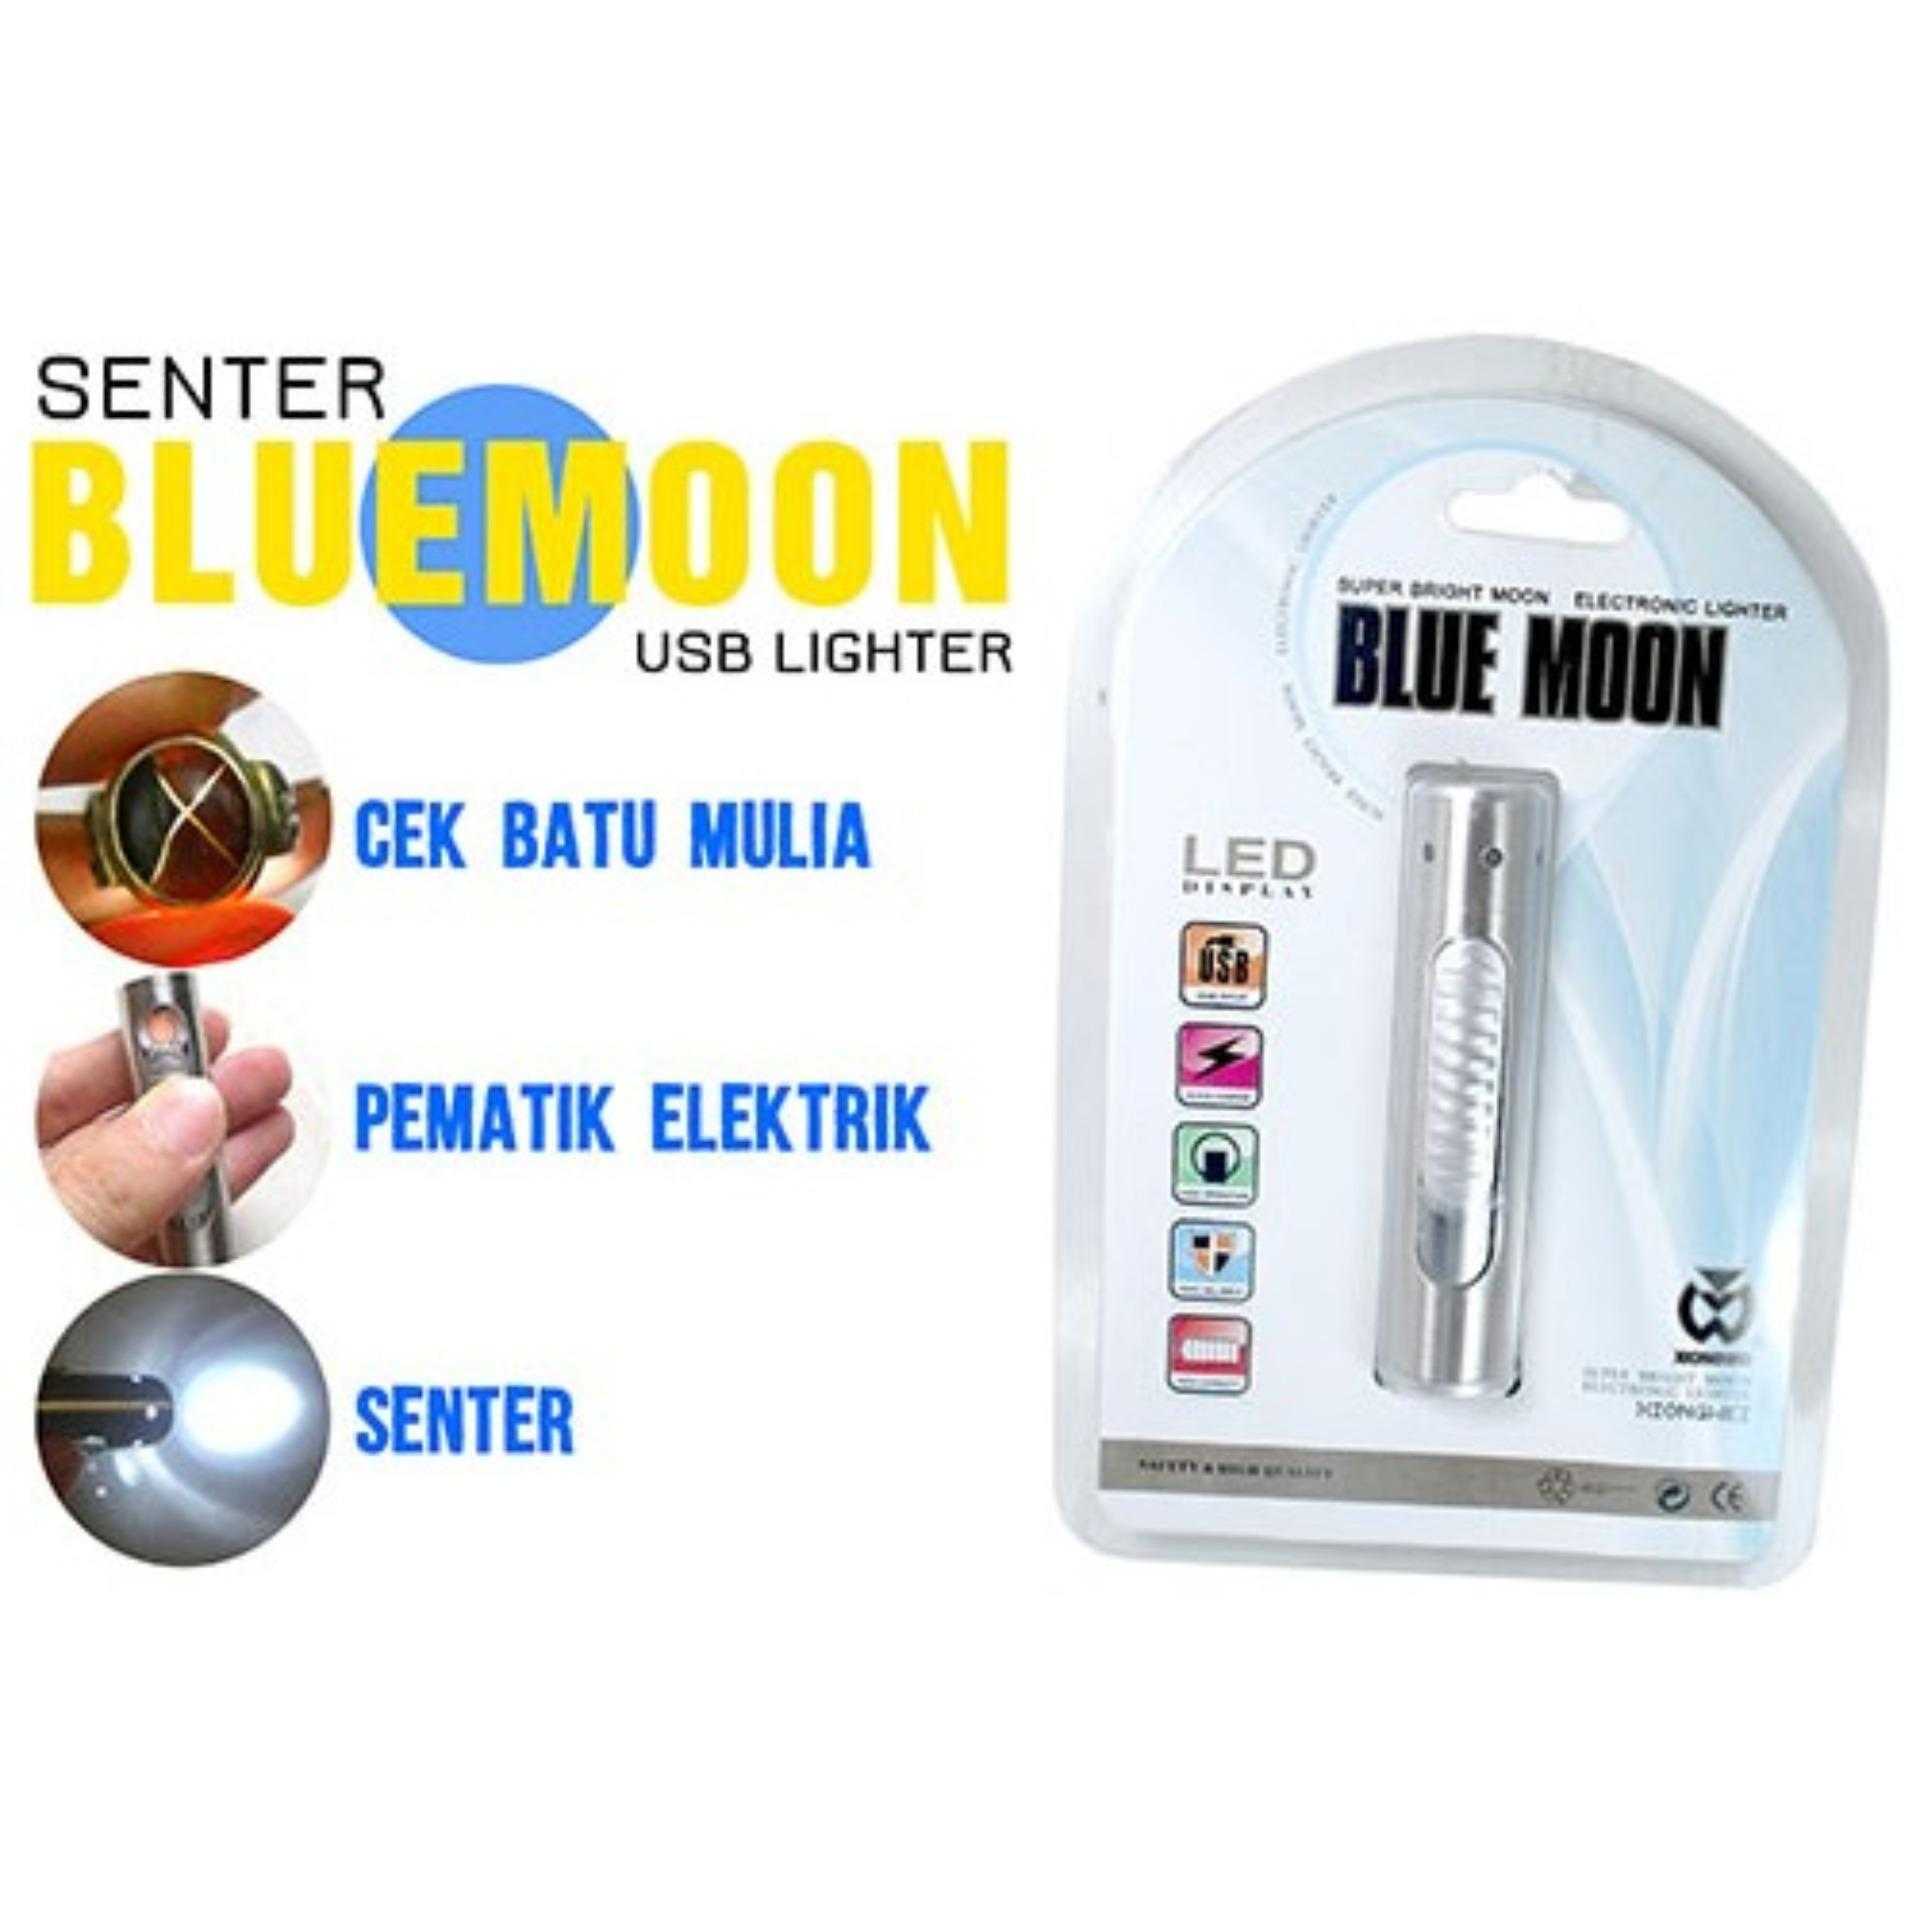 ... Elektrik Lighter USB Anti Angin - Random Color. Source · OHOME Korek Api USB Anti Angin Senter LED Rechargeable Blue Moon - TOX